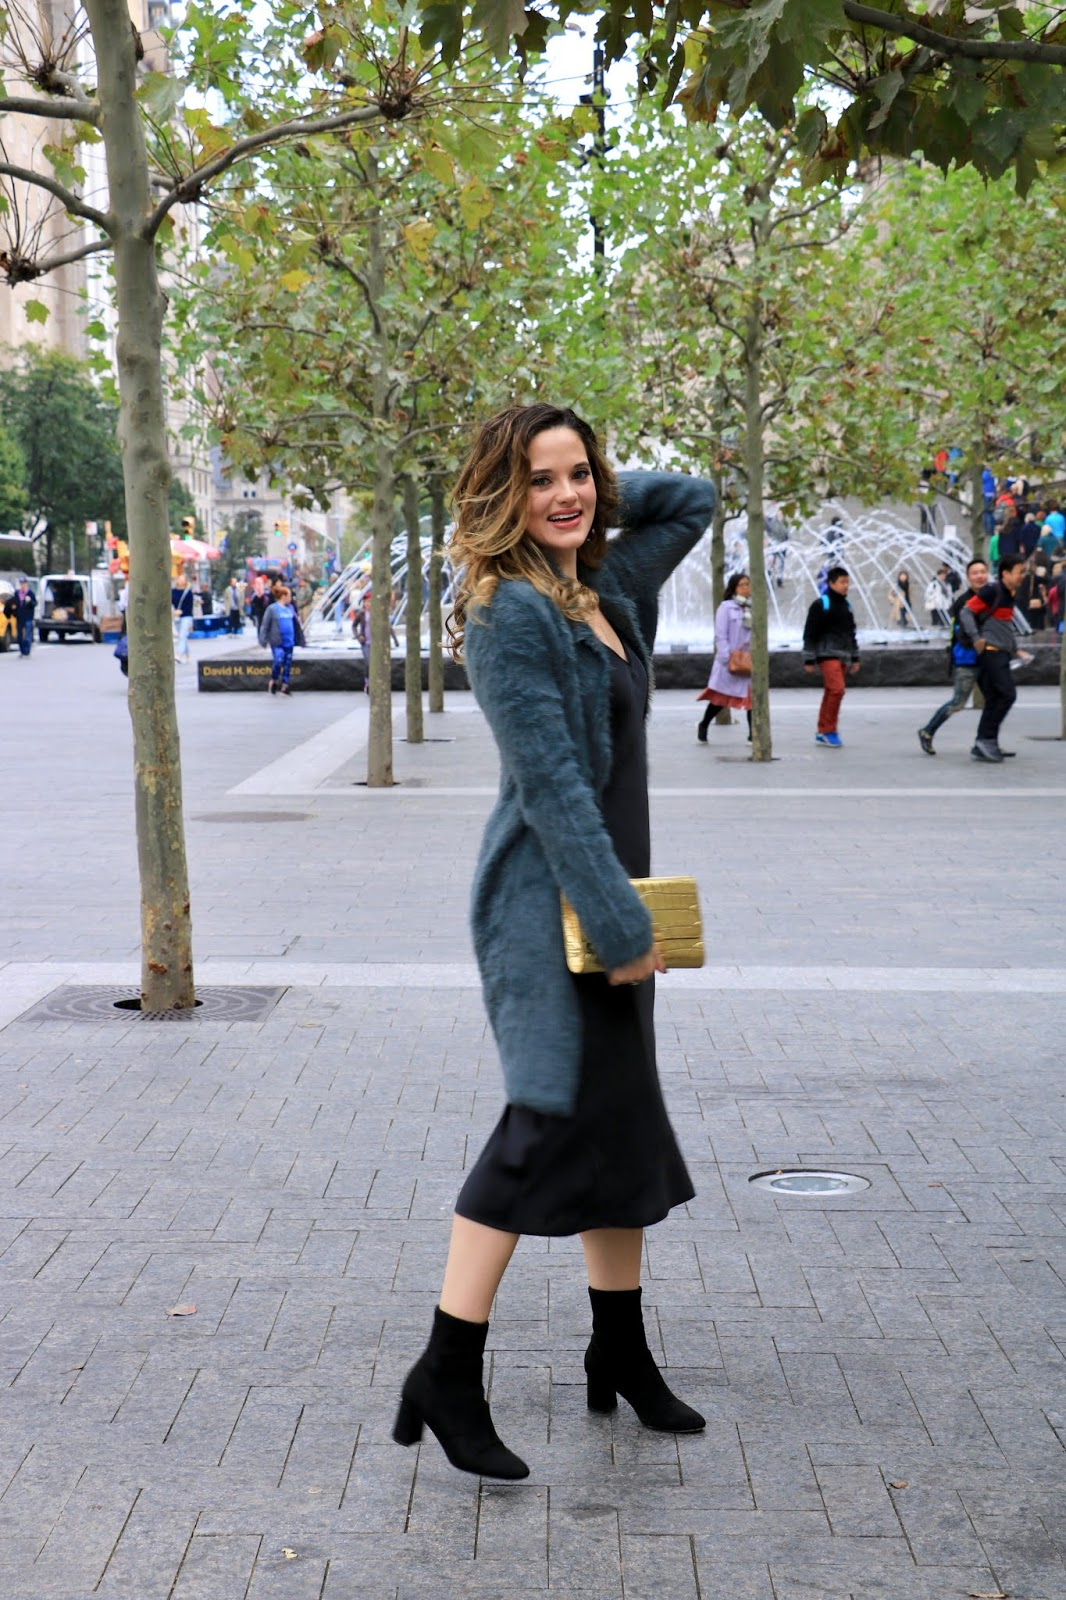 Nyc fashion blogger Kathleen Harper wearing a black slip dress outfit.